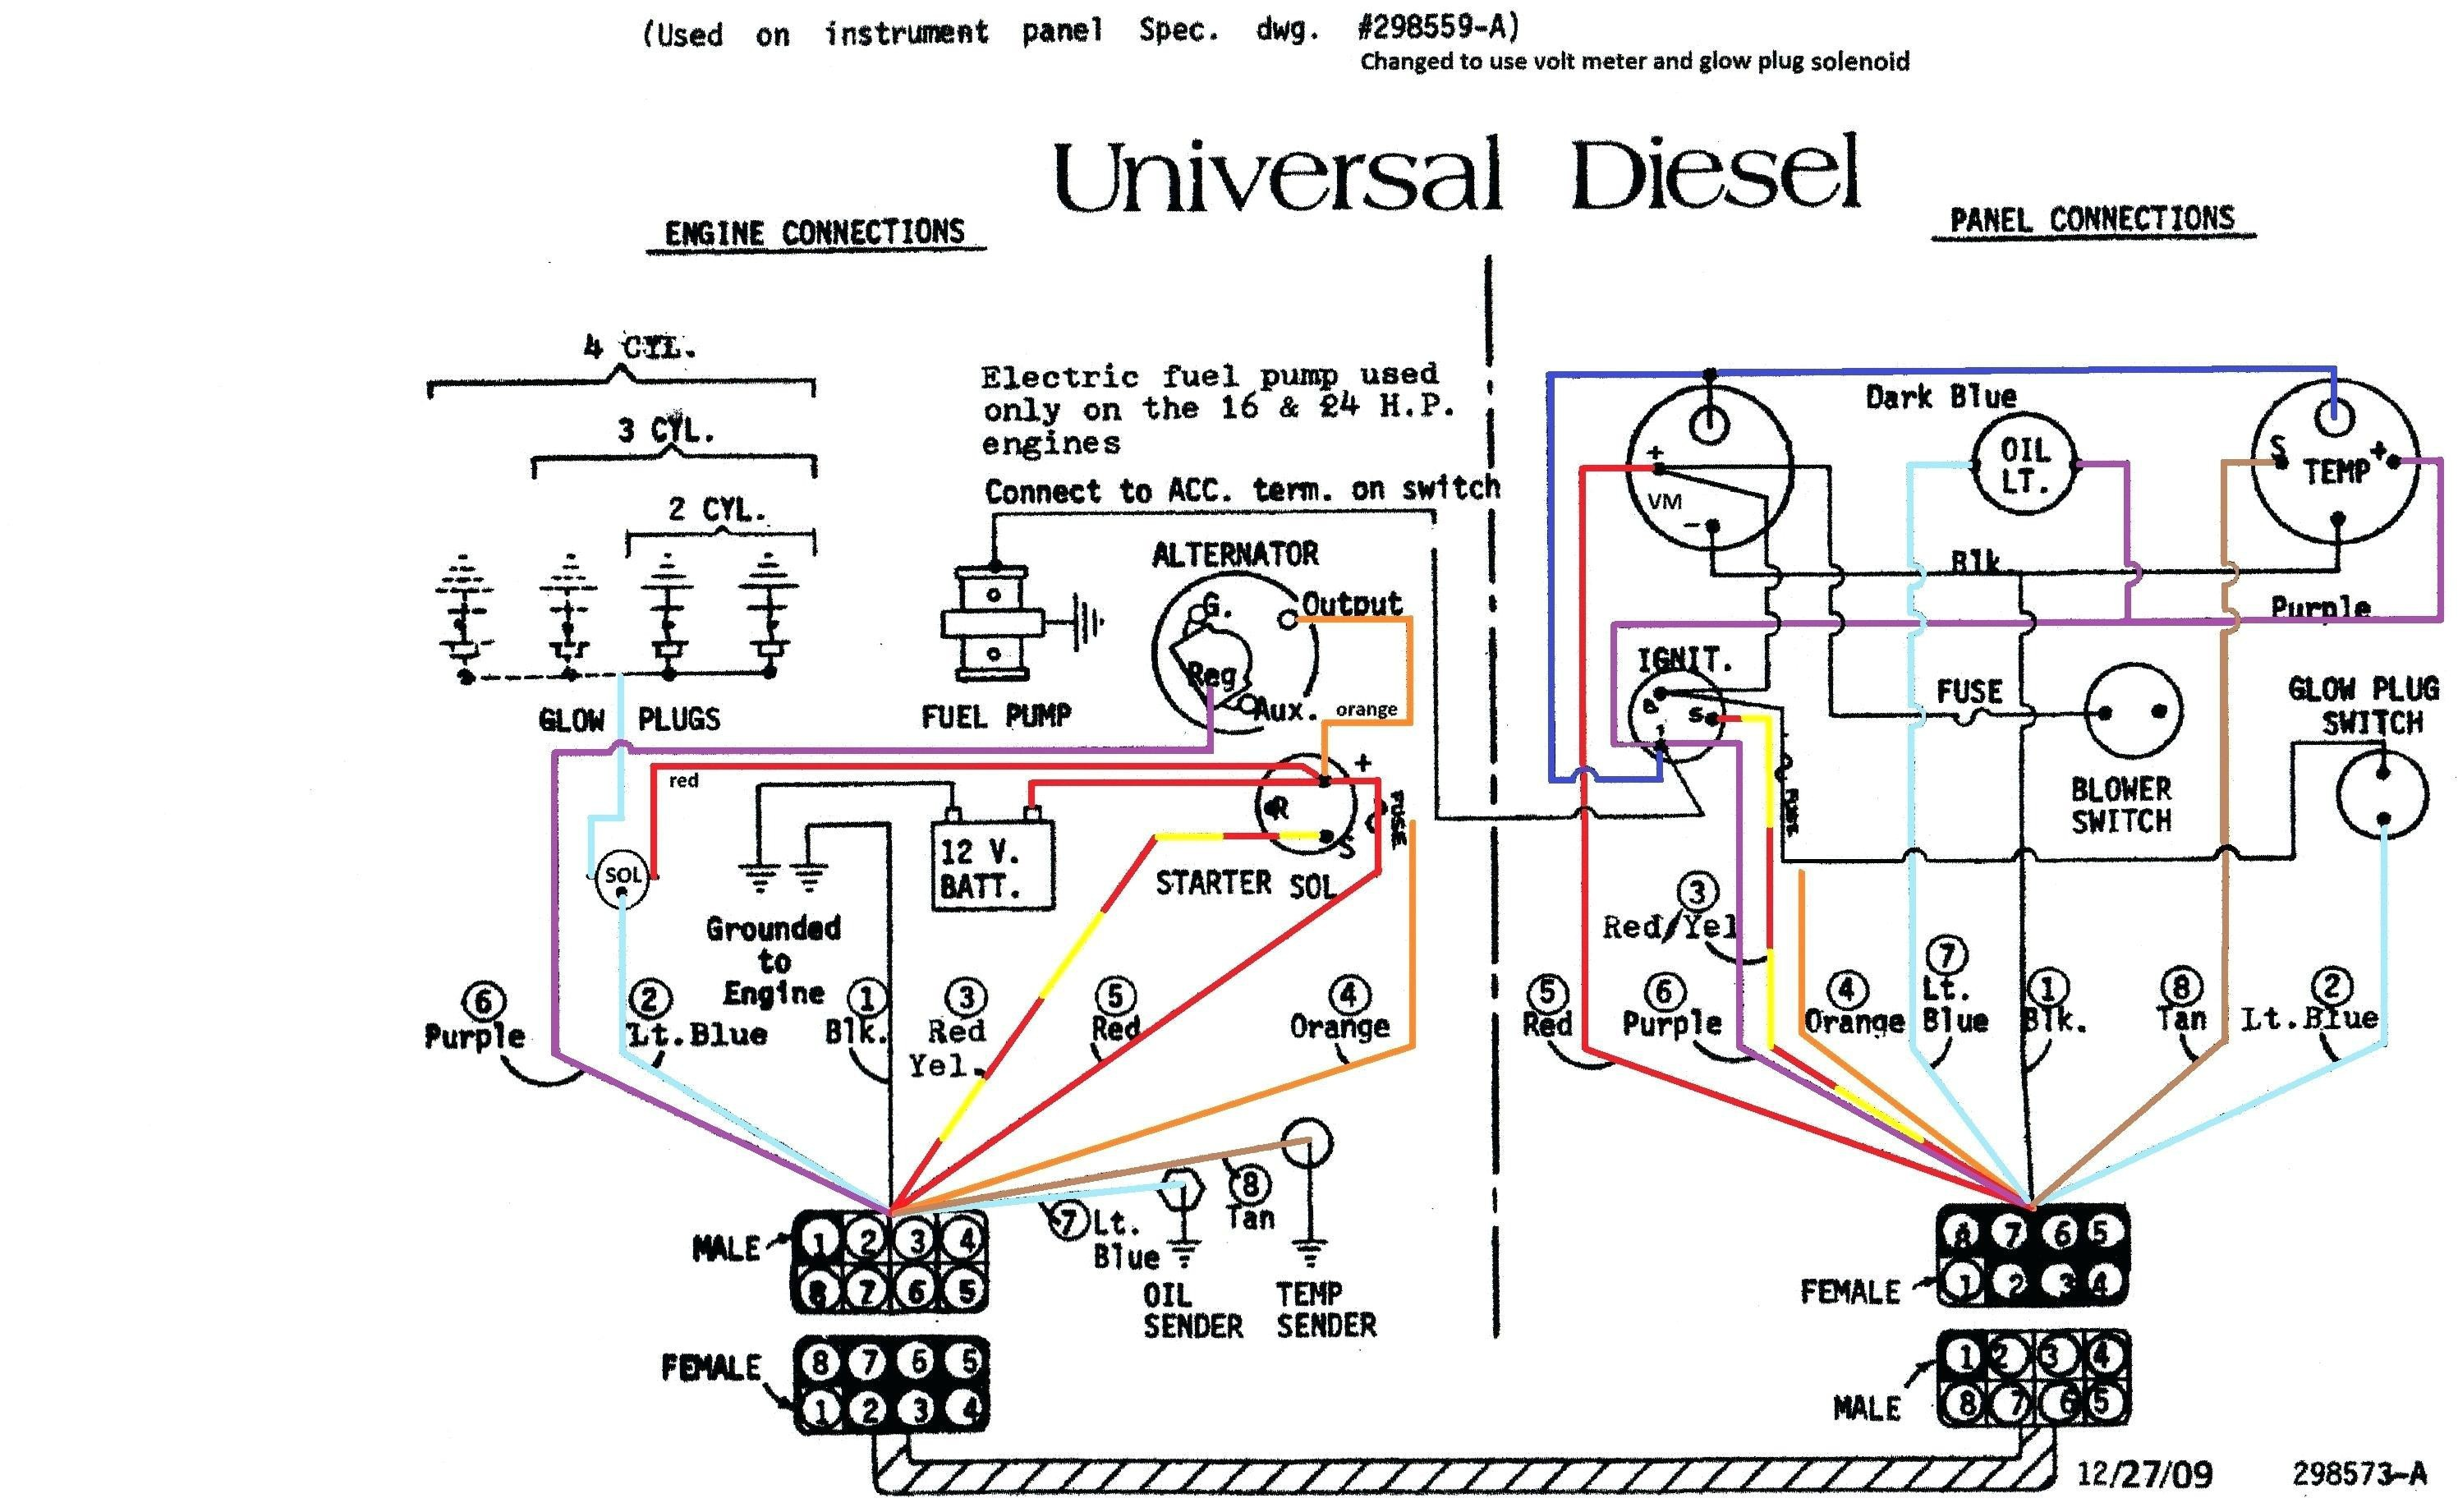 Mercruiser 3.0 Alternator Wiring Diagram from static-resources.imageservice.cloud